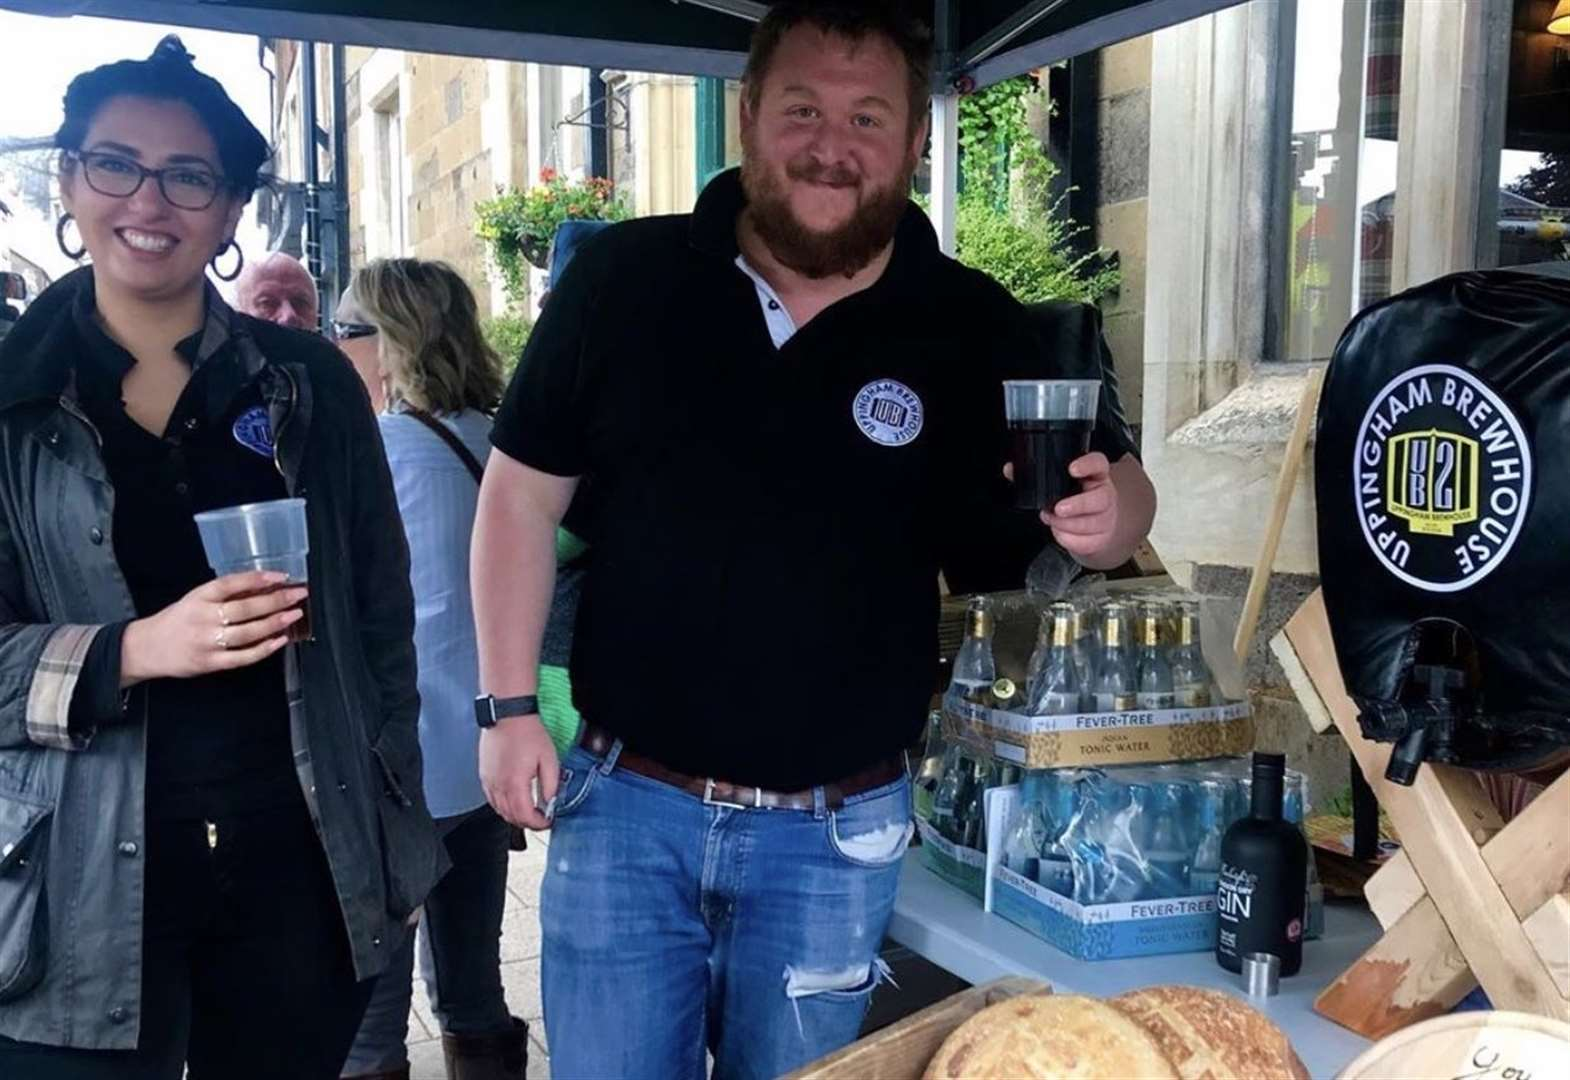 Town pubs brew up first festival